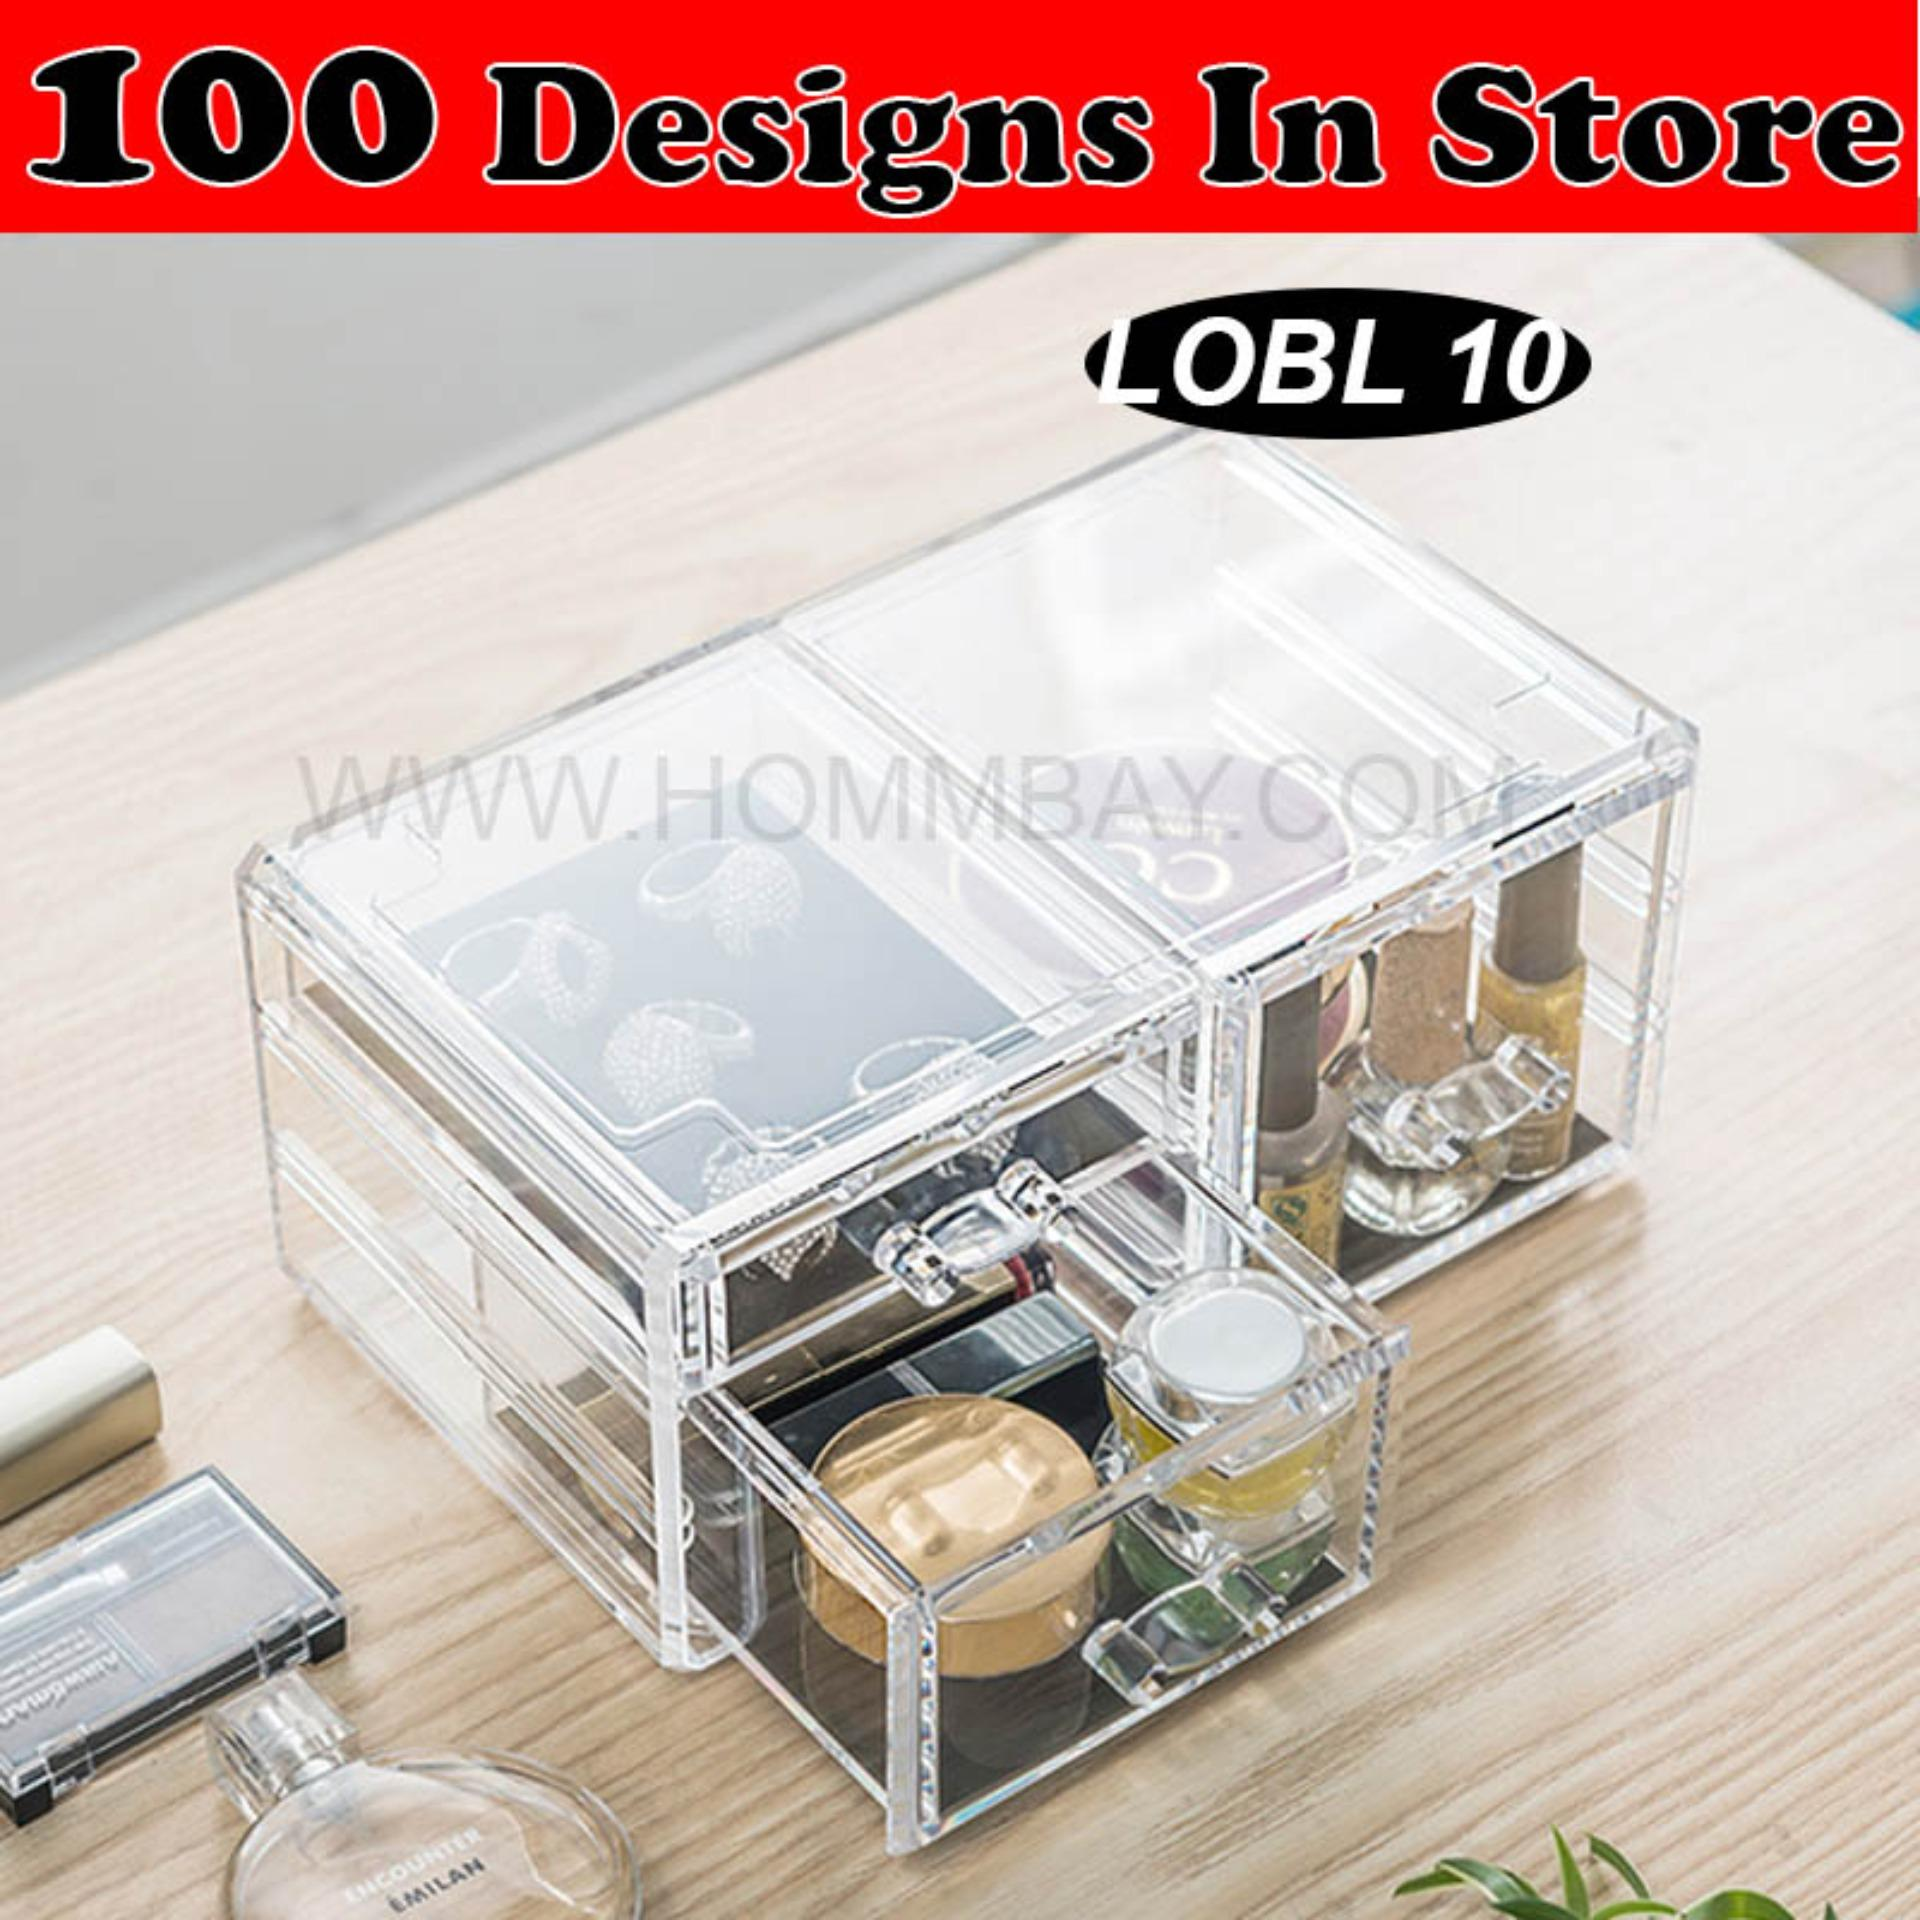 Clear Acrylic Transparent Make Up Makeup Lipstick Brush Brushes Cosmetic Jewellery Jewelry Organiser Organizer Drawer Storage Box Holder I Large I Stackable I Lobl 10 Coupon Code